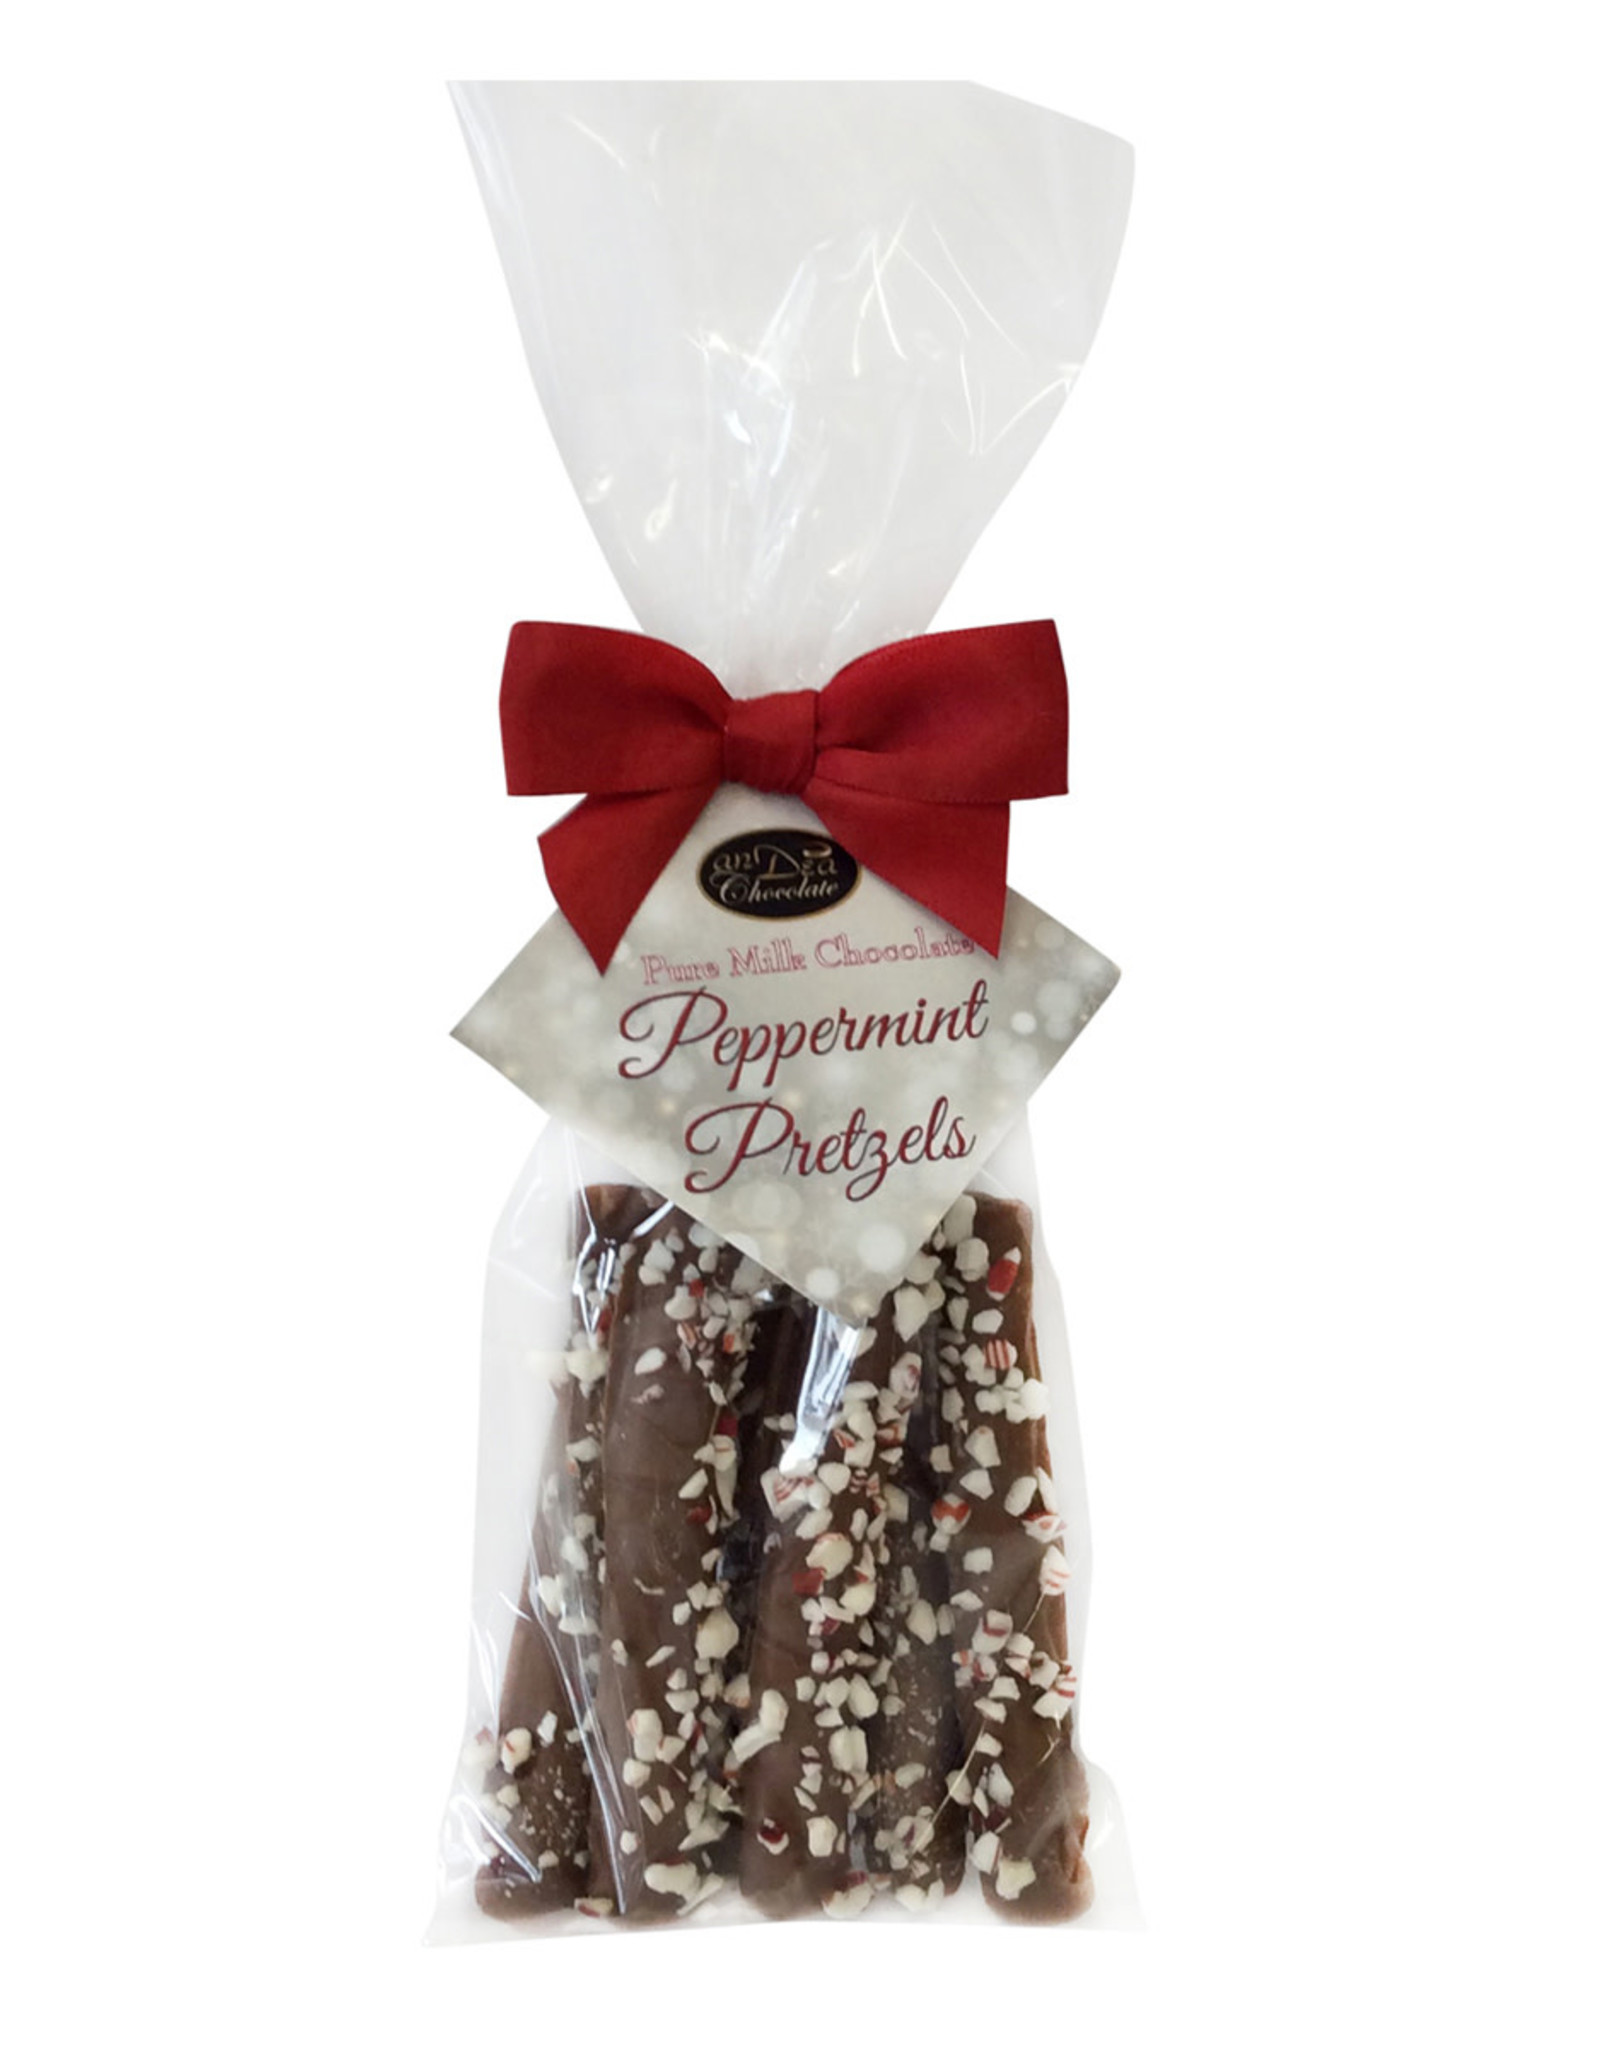 Andea Chocolate Chocolate Peppermint Pretzel Sticks 6 pcs